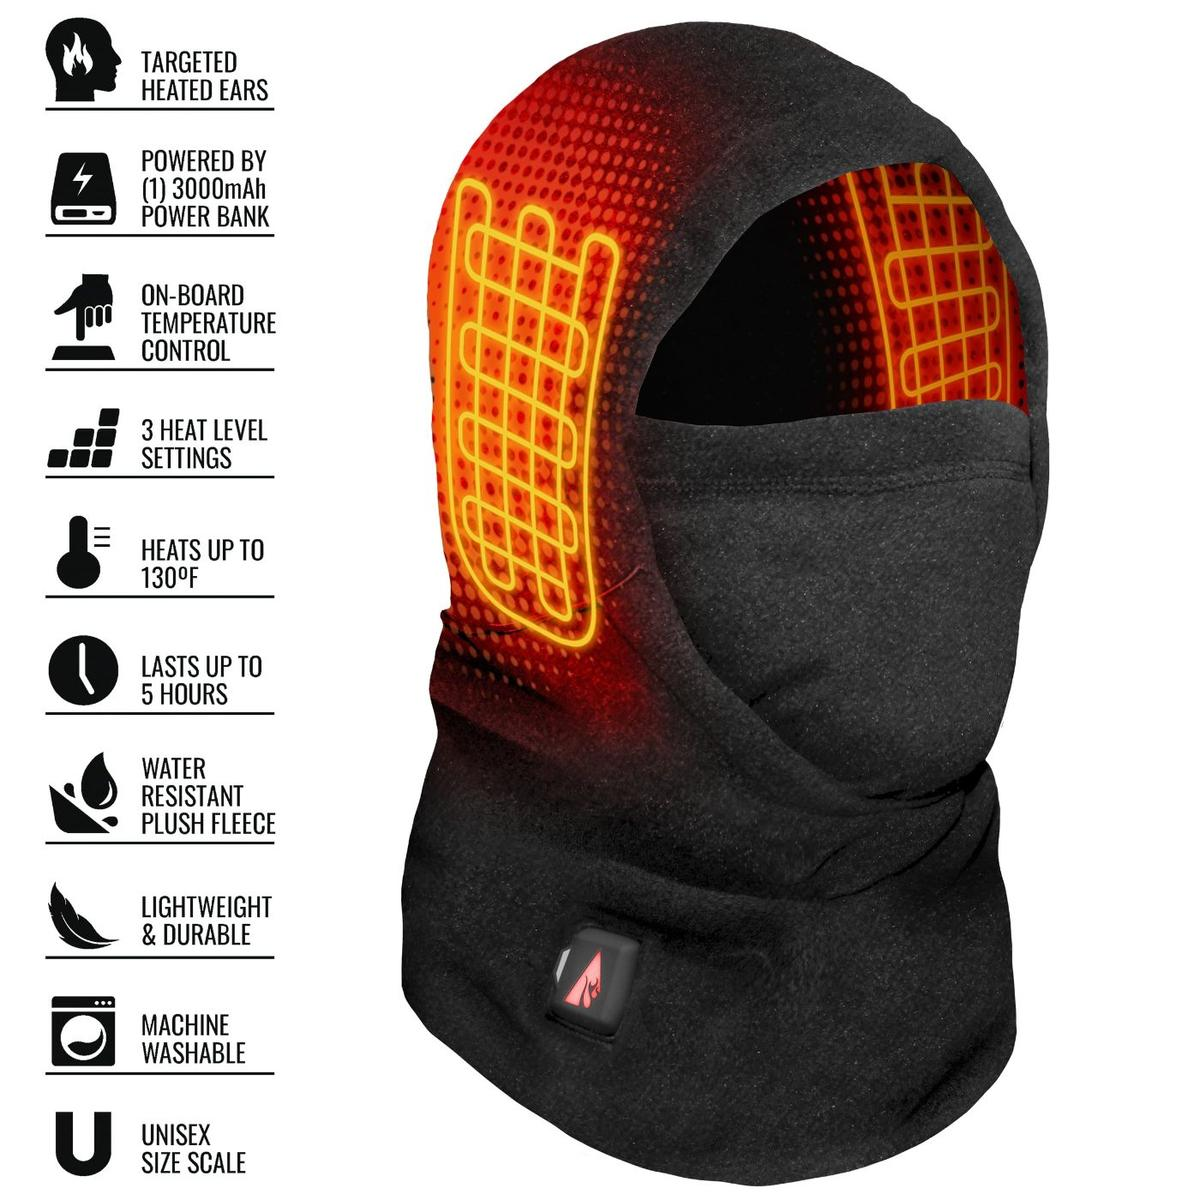 ActionHeat 5V Battery Heated Fleece Balaclava - Info